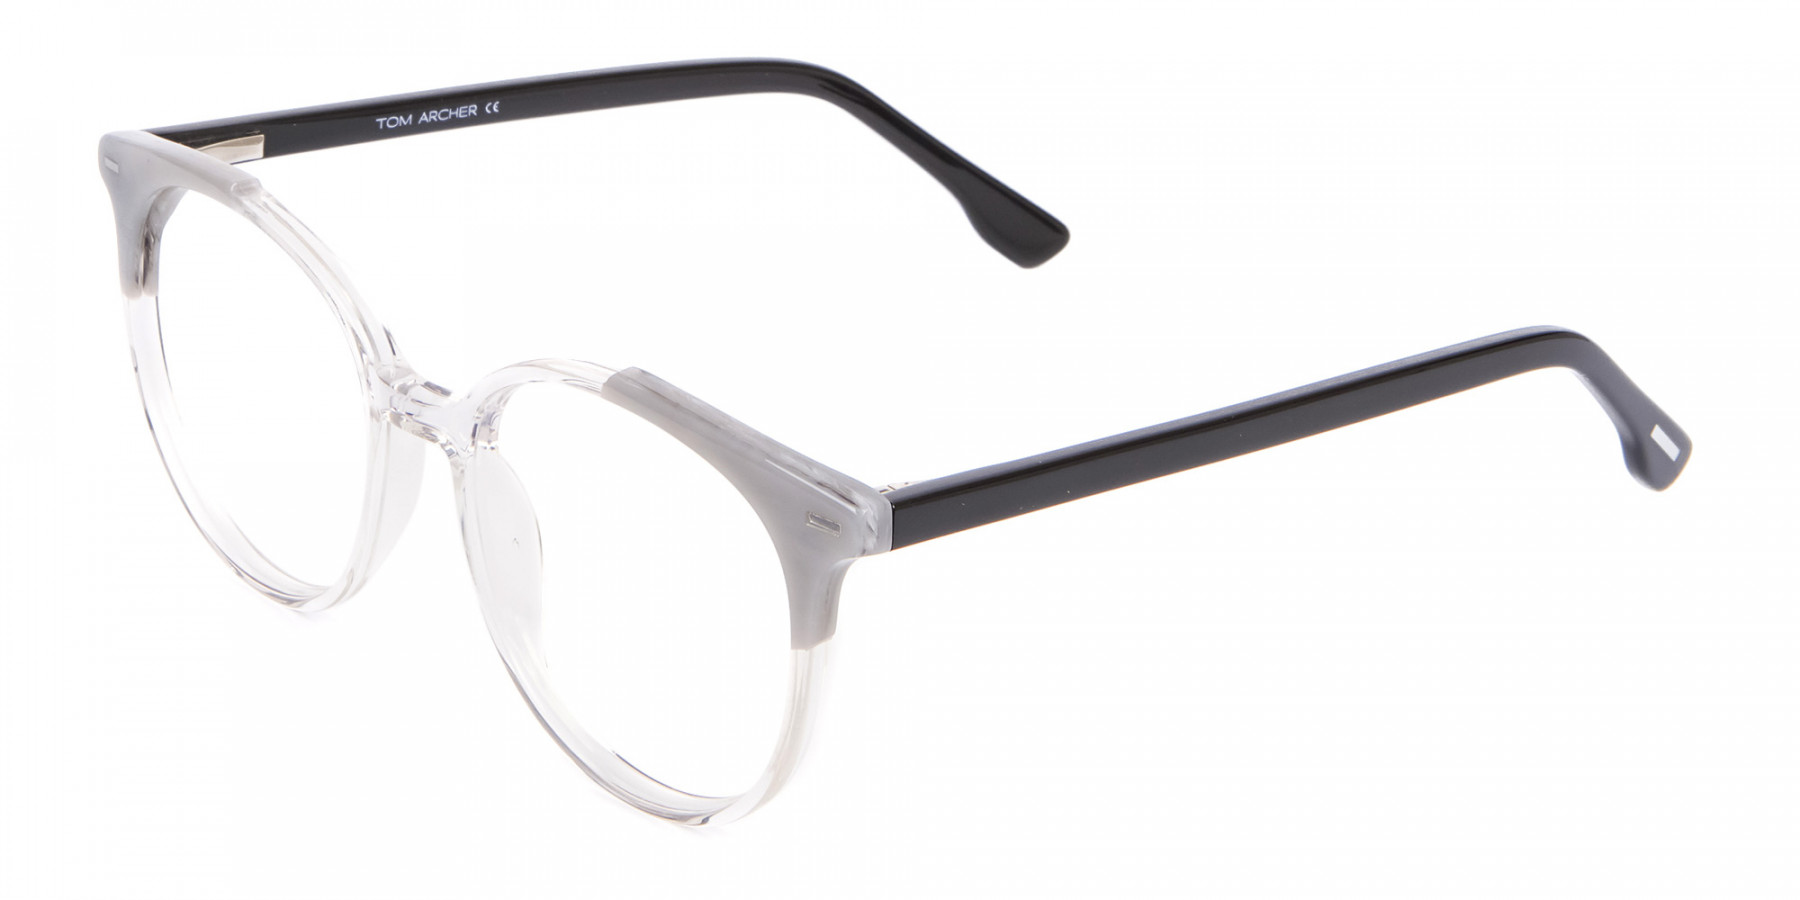 Smart Round Glasses in Trendy Clear Style - 1